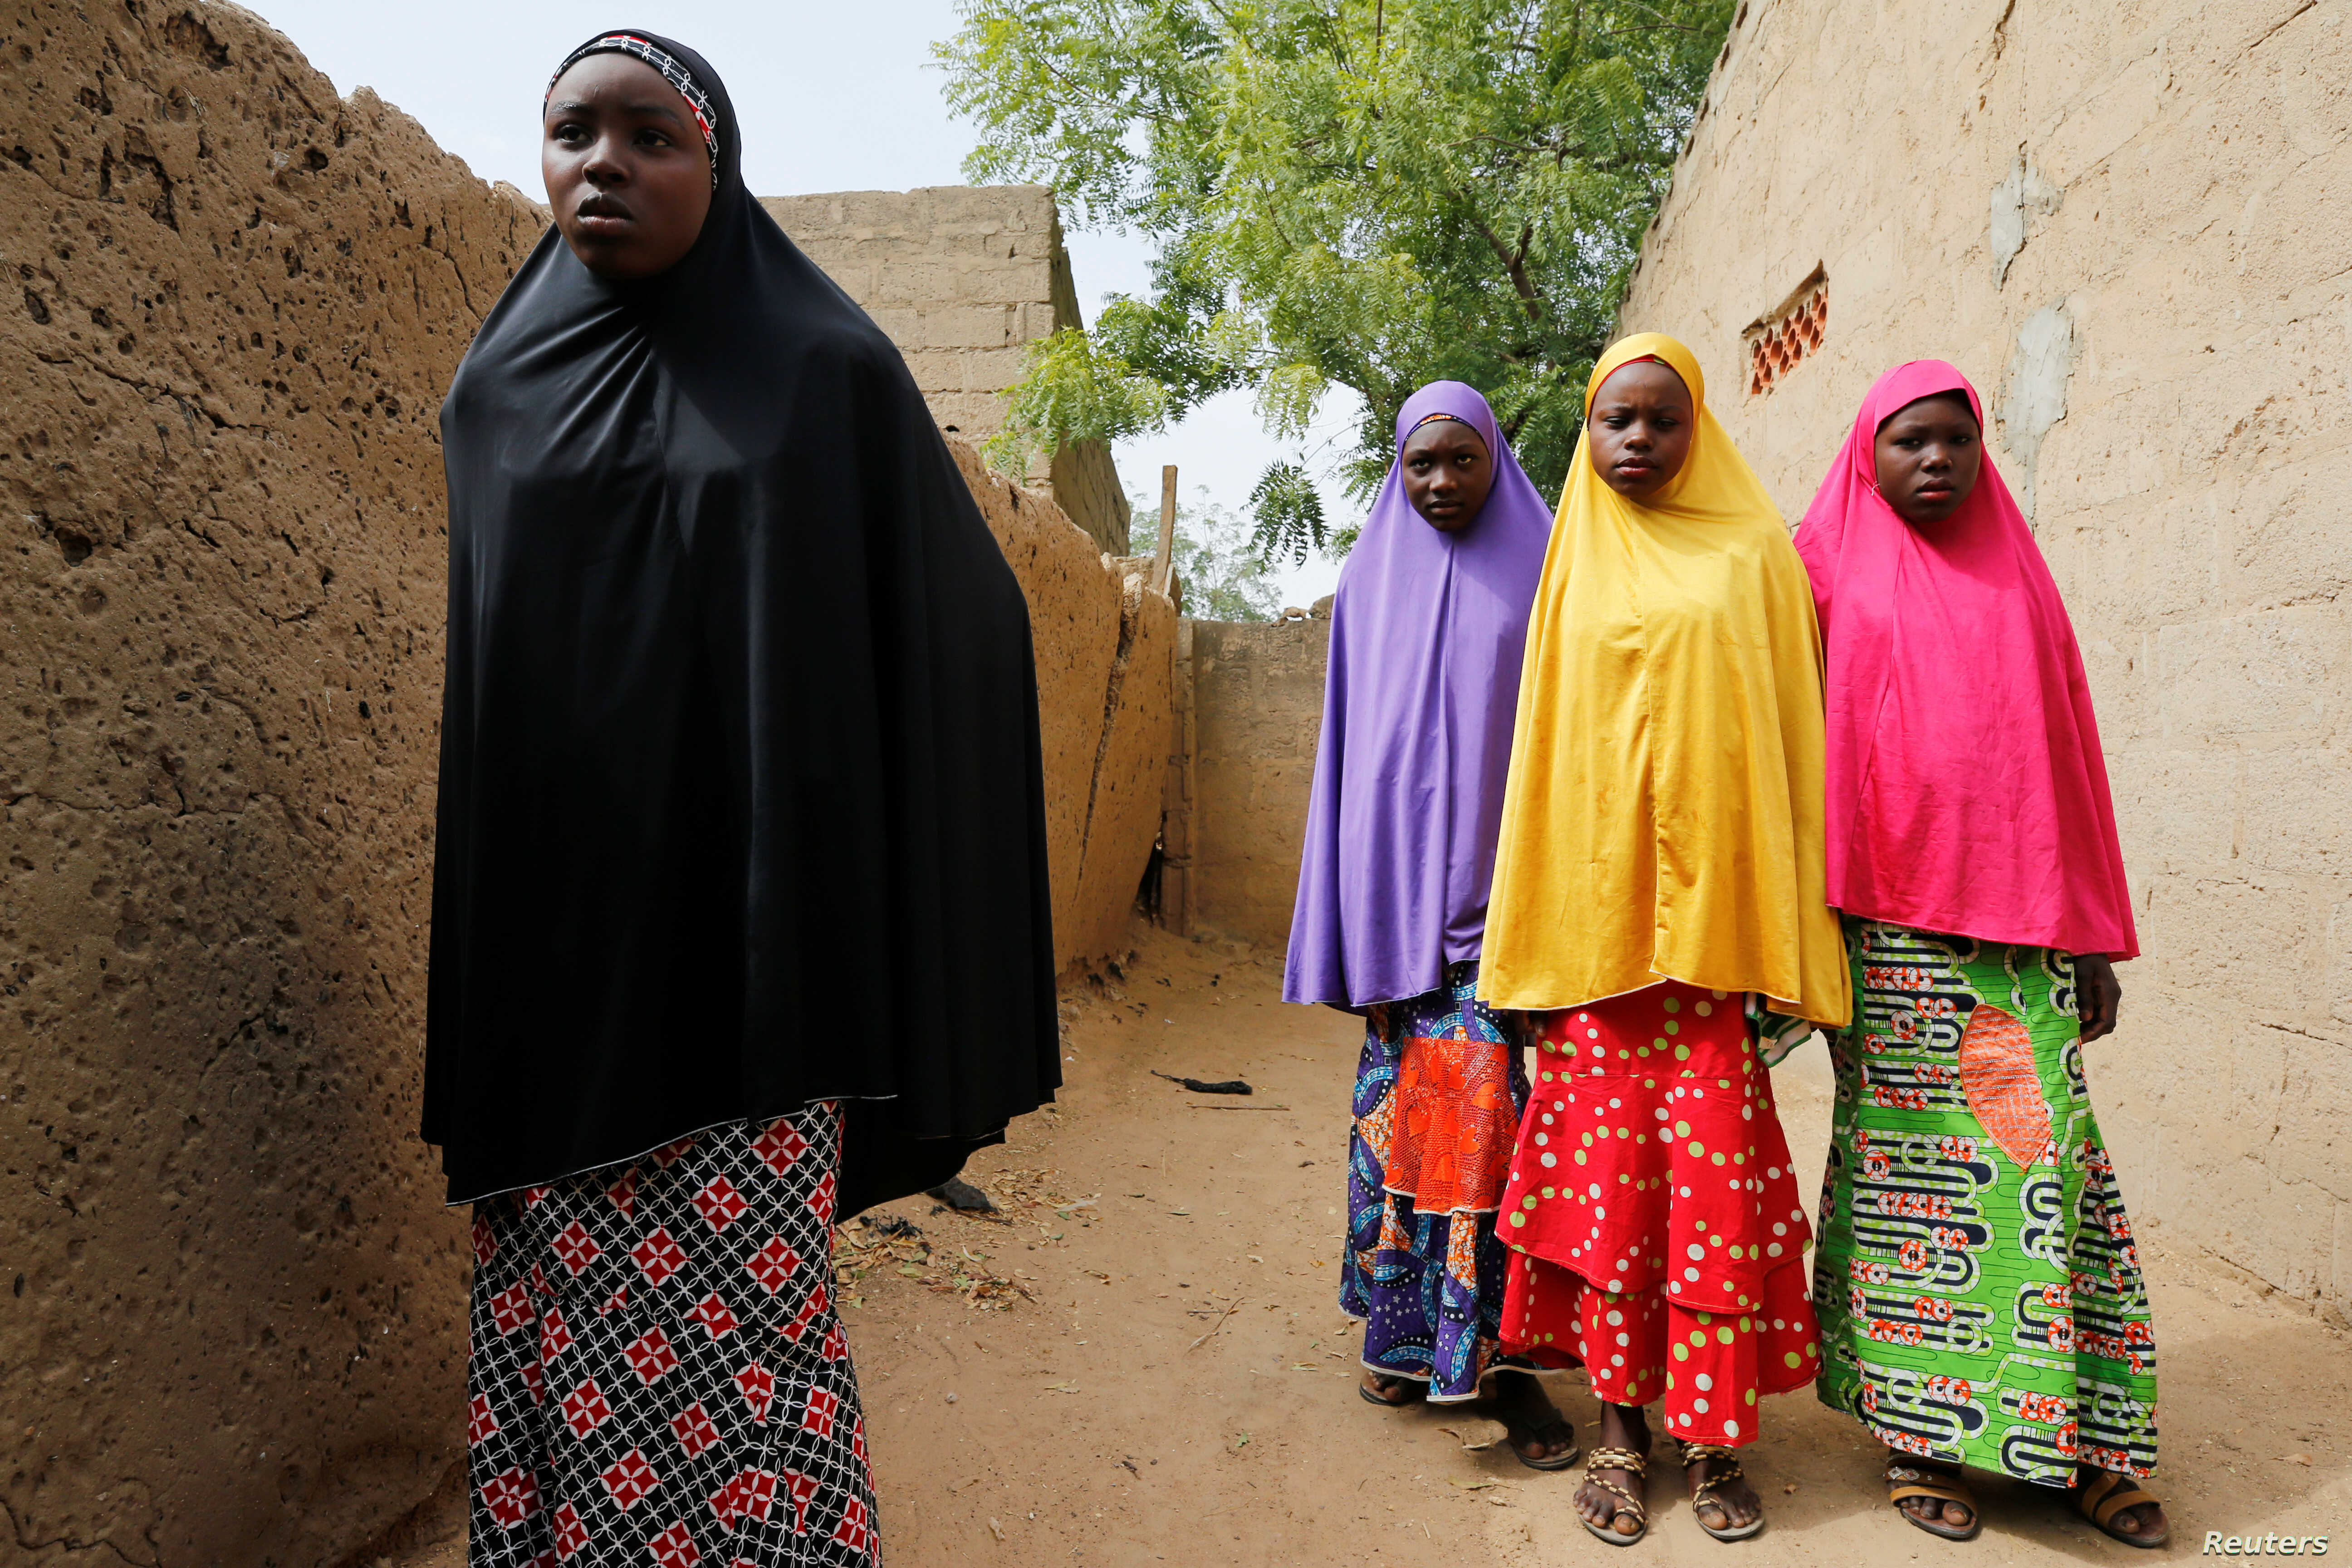 Amina Usman (L), a 15-year-old student, who was among those who escaped the attack on her school, stands with her sisters in Dapchi, Nigeria, Feb. 23, 2018.